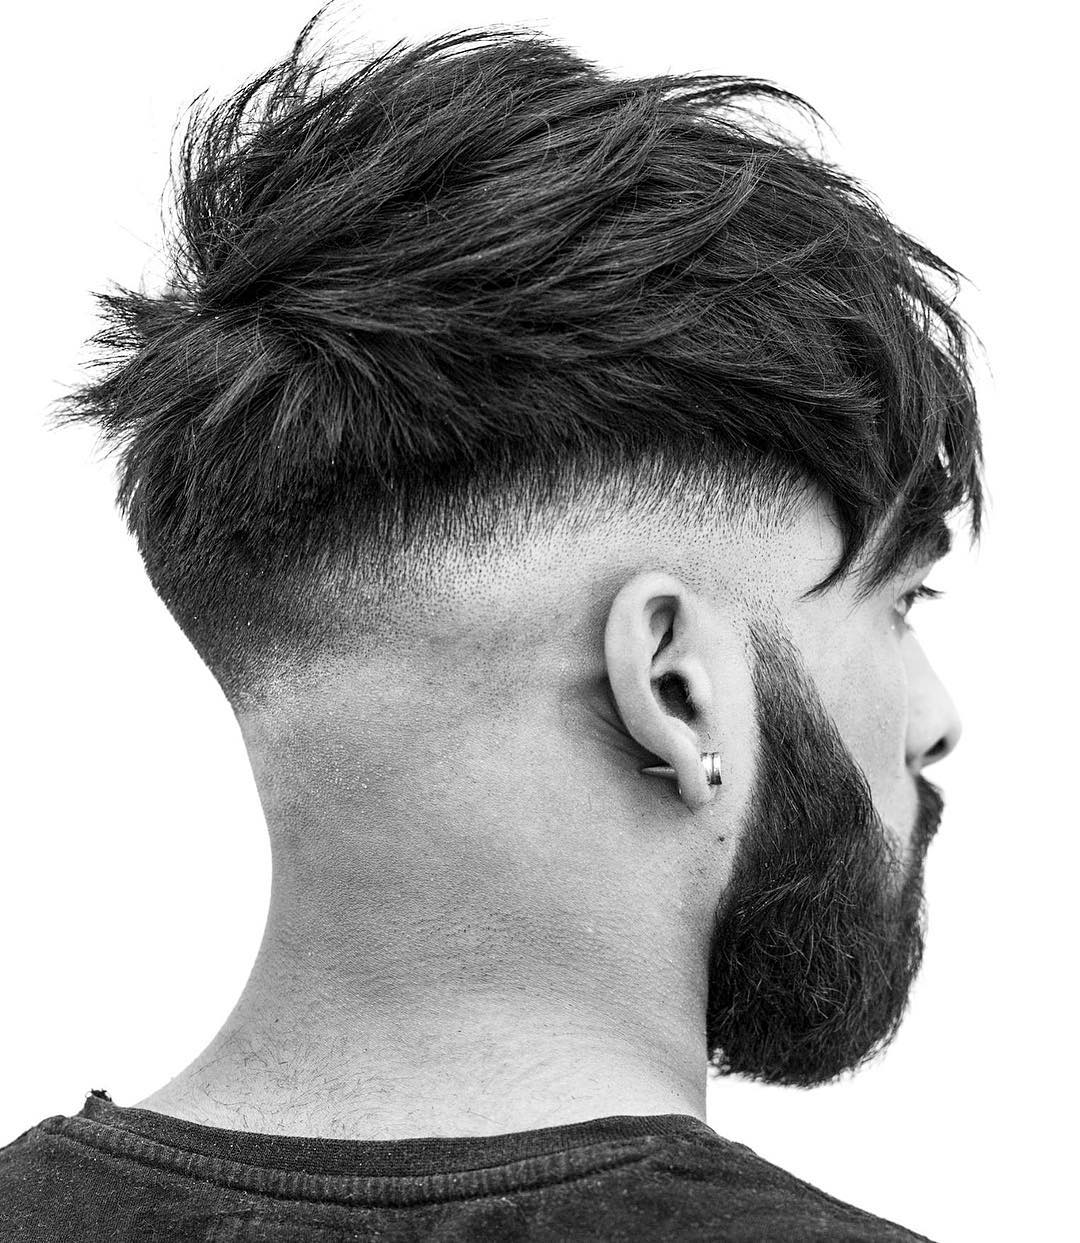 r.braid low bald fade messy textured mens haircut